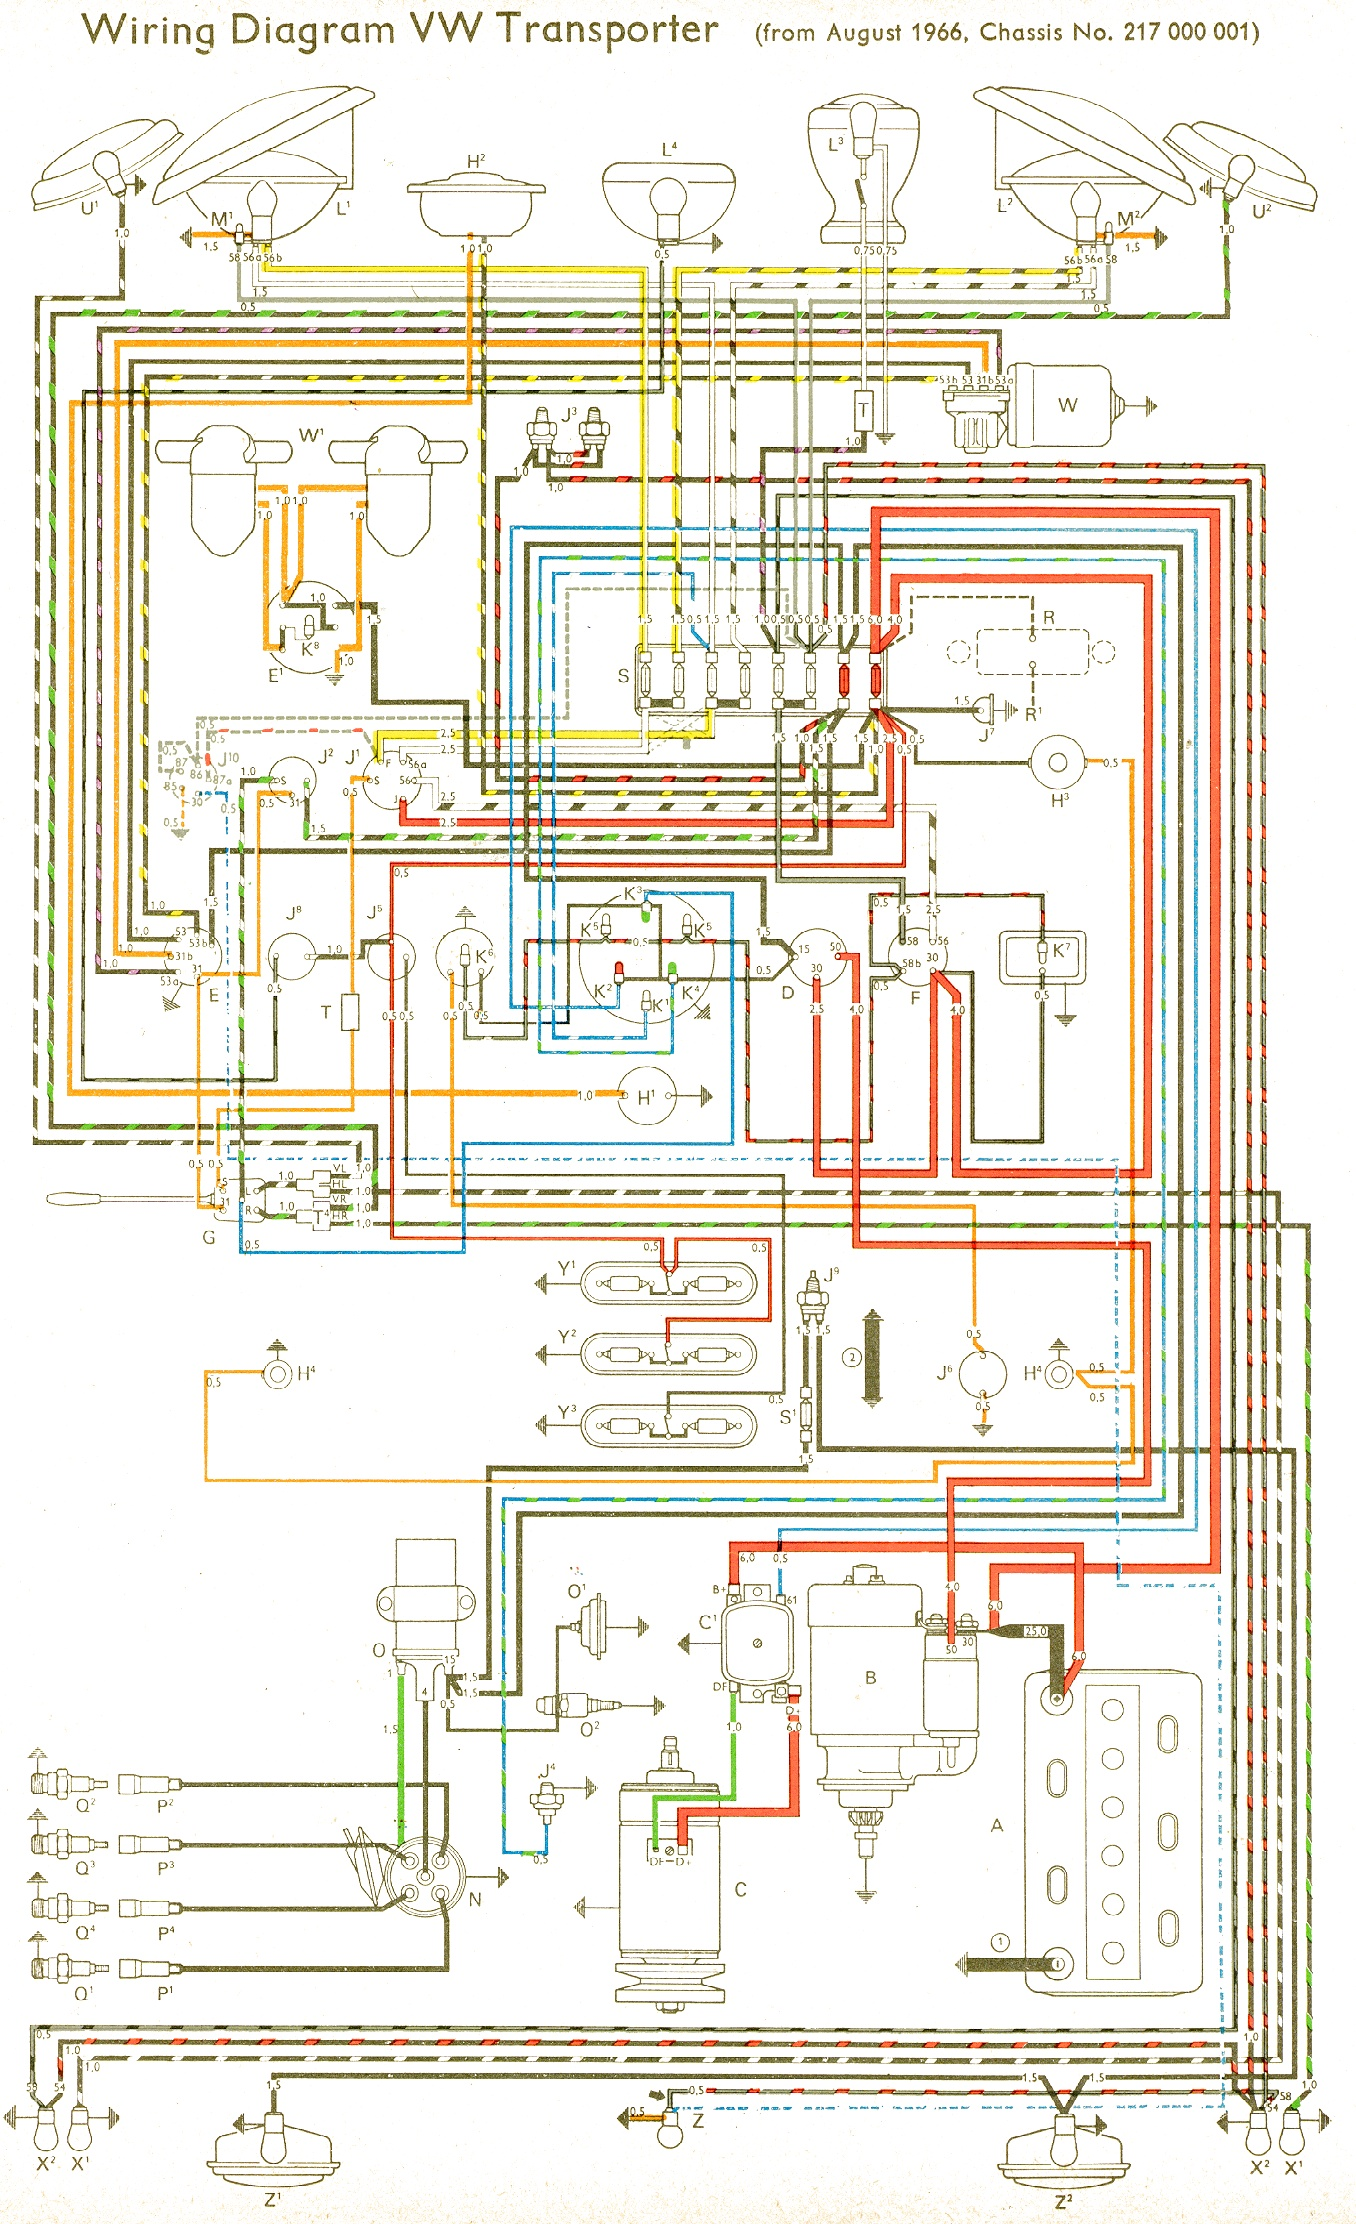 vw bus wiring harness - application wiring diagram •  application wiring diagram